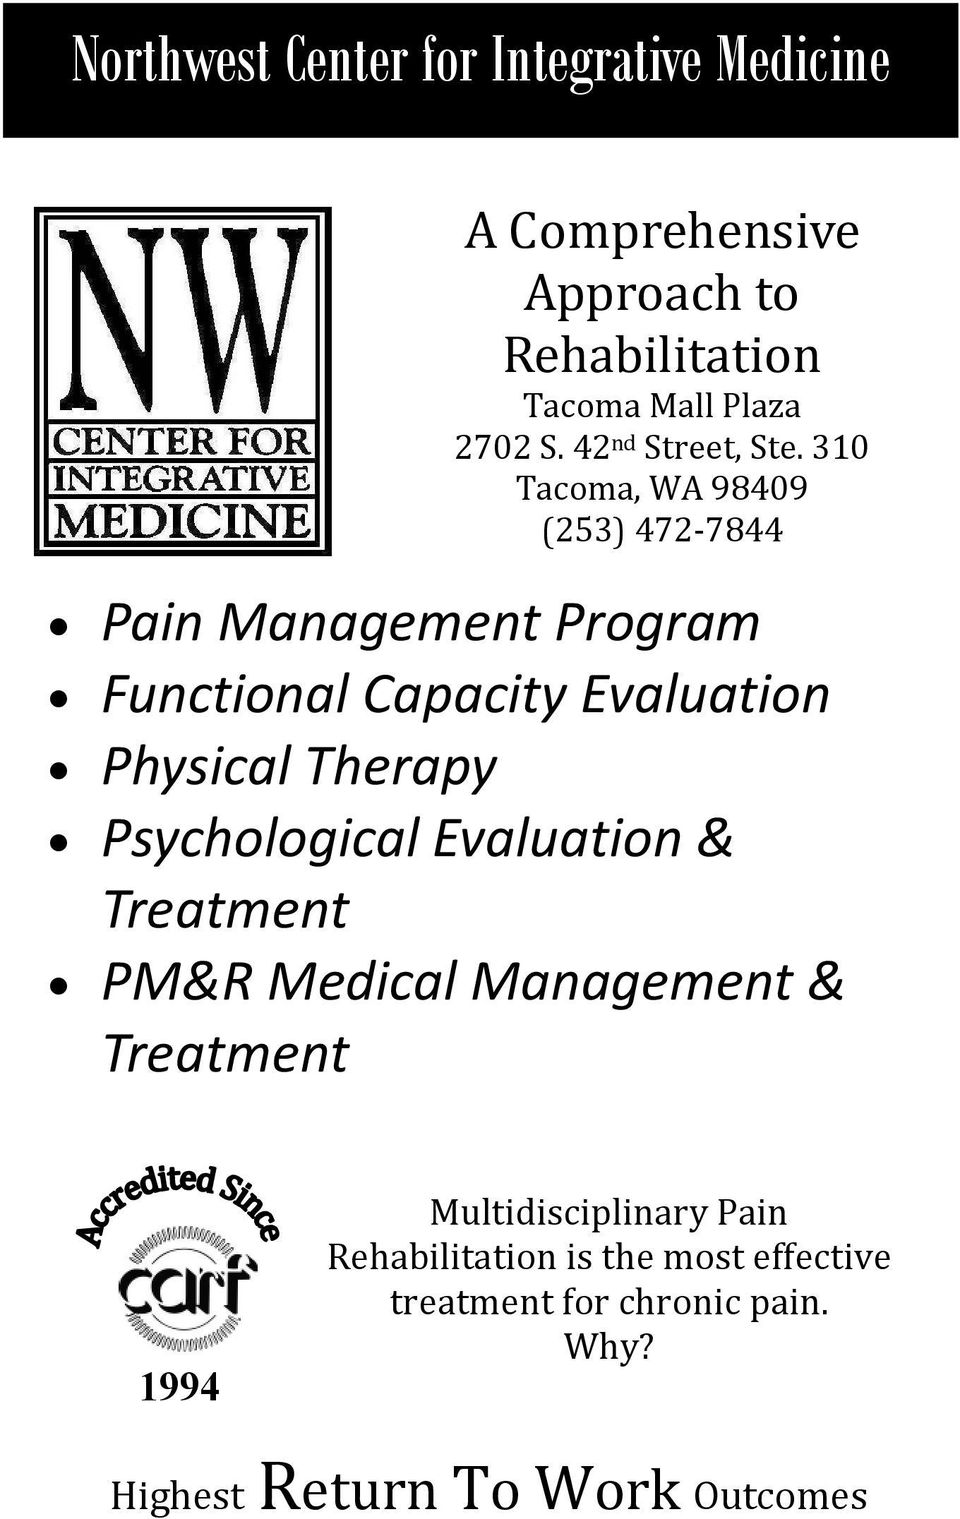 310 Tacoma, WA 98409 (253) 472-7844 Pain Management Program Functional Capacity Evaluation Physical Therapy Psychological